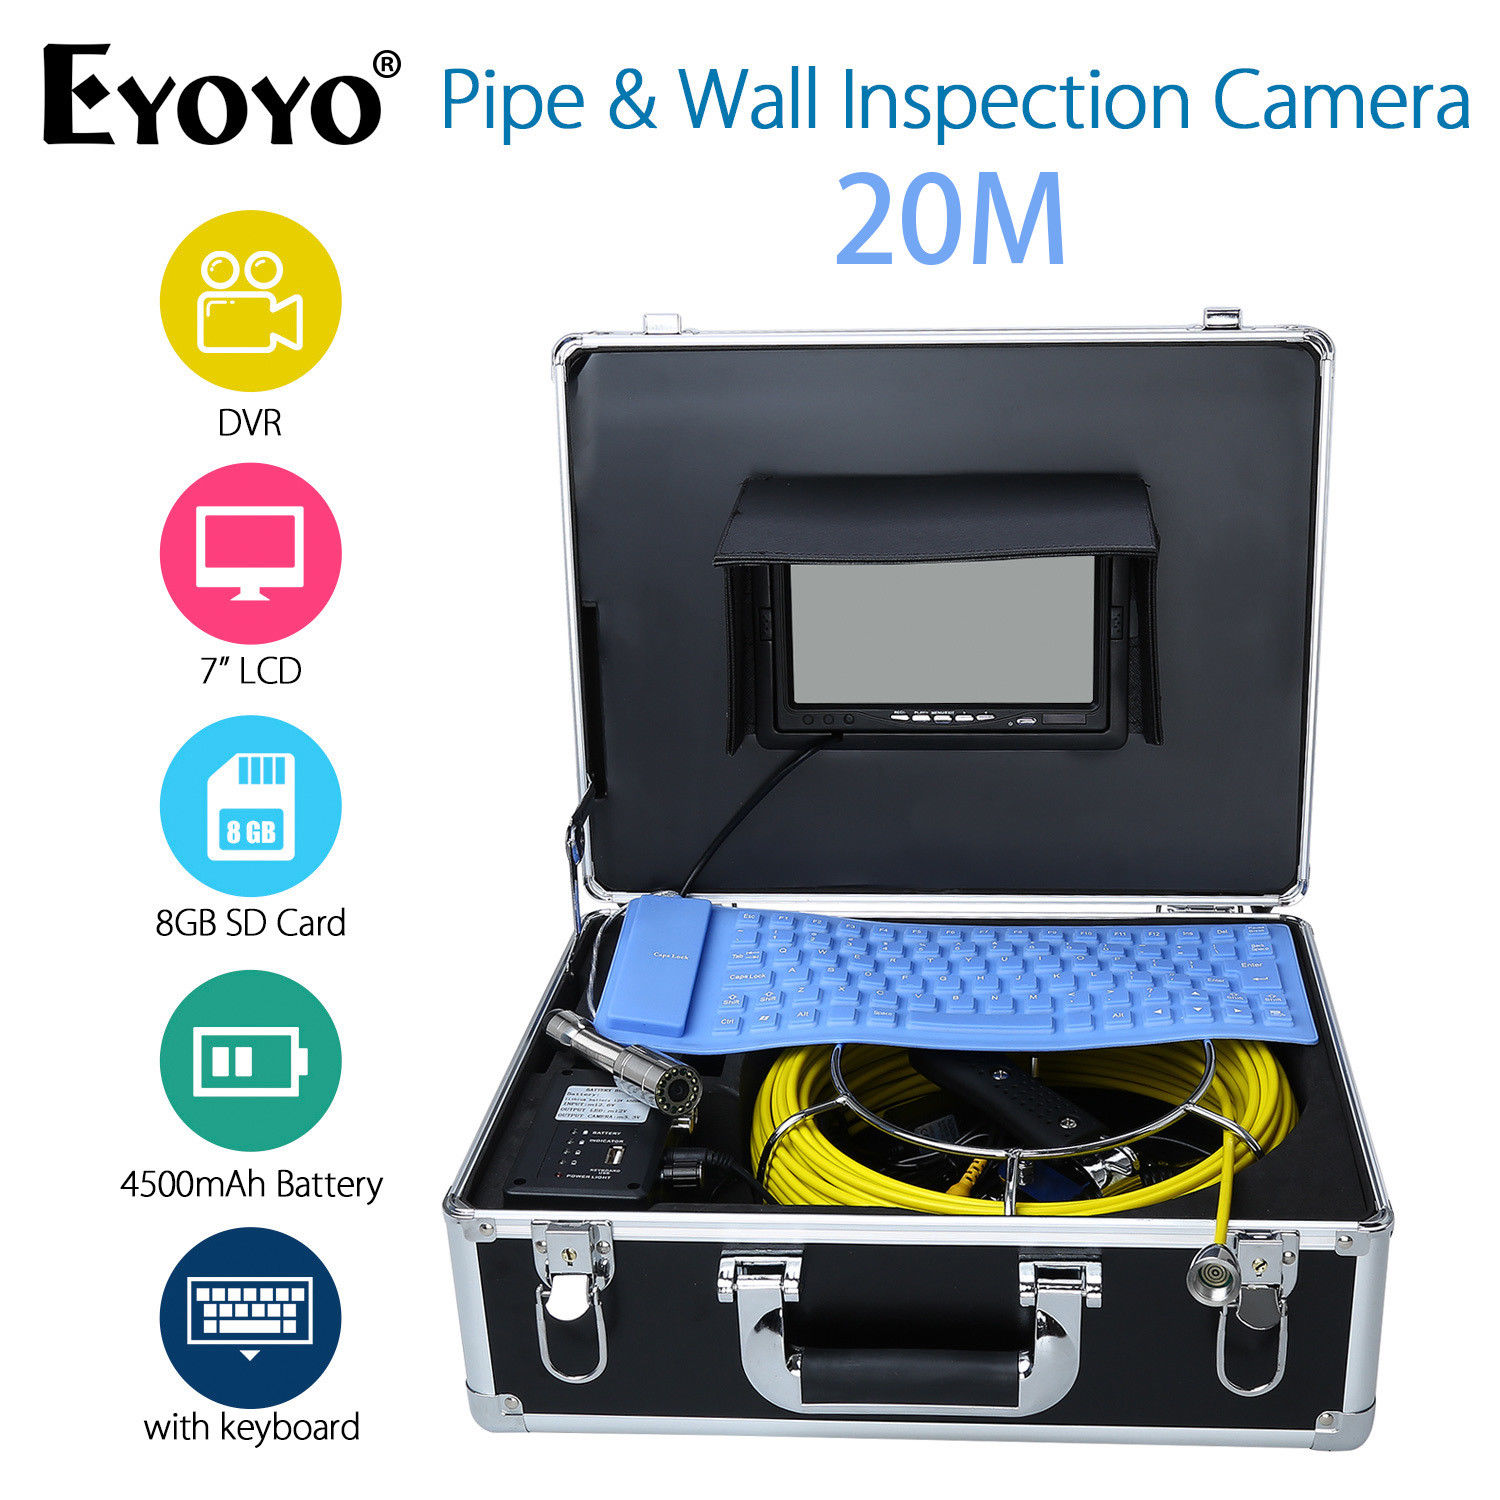 EYOYO 7 LCD Screen 20M Pipe&Wall Inspection Camera Sewer Drain Inspection Endoscope w/Keyboard 1000TVL DVR Recording 8GB eyoyo 7 lcd screen 20m 800 480 1000tvl 4500mah sewer drain camera pipe wall inspection endoscope w keyboard dvr recording 8gb